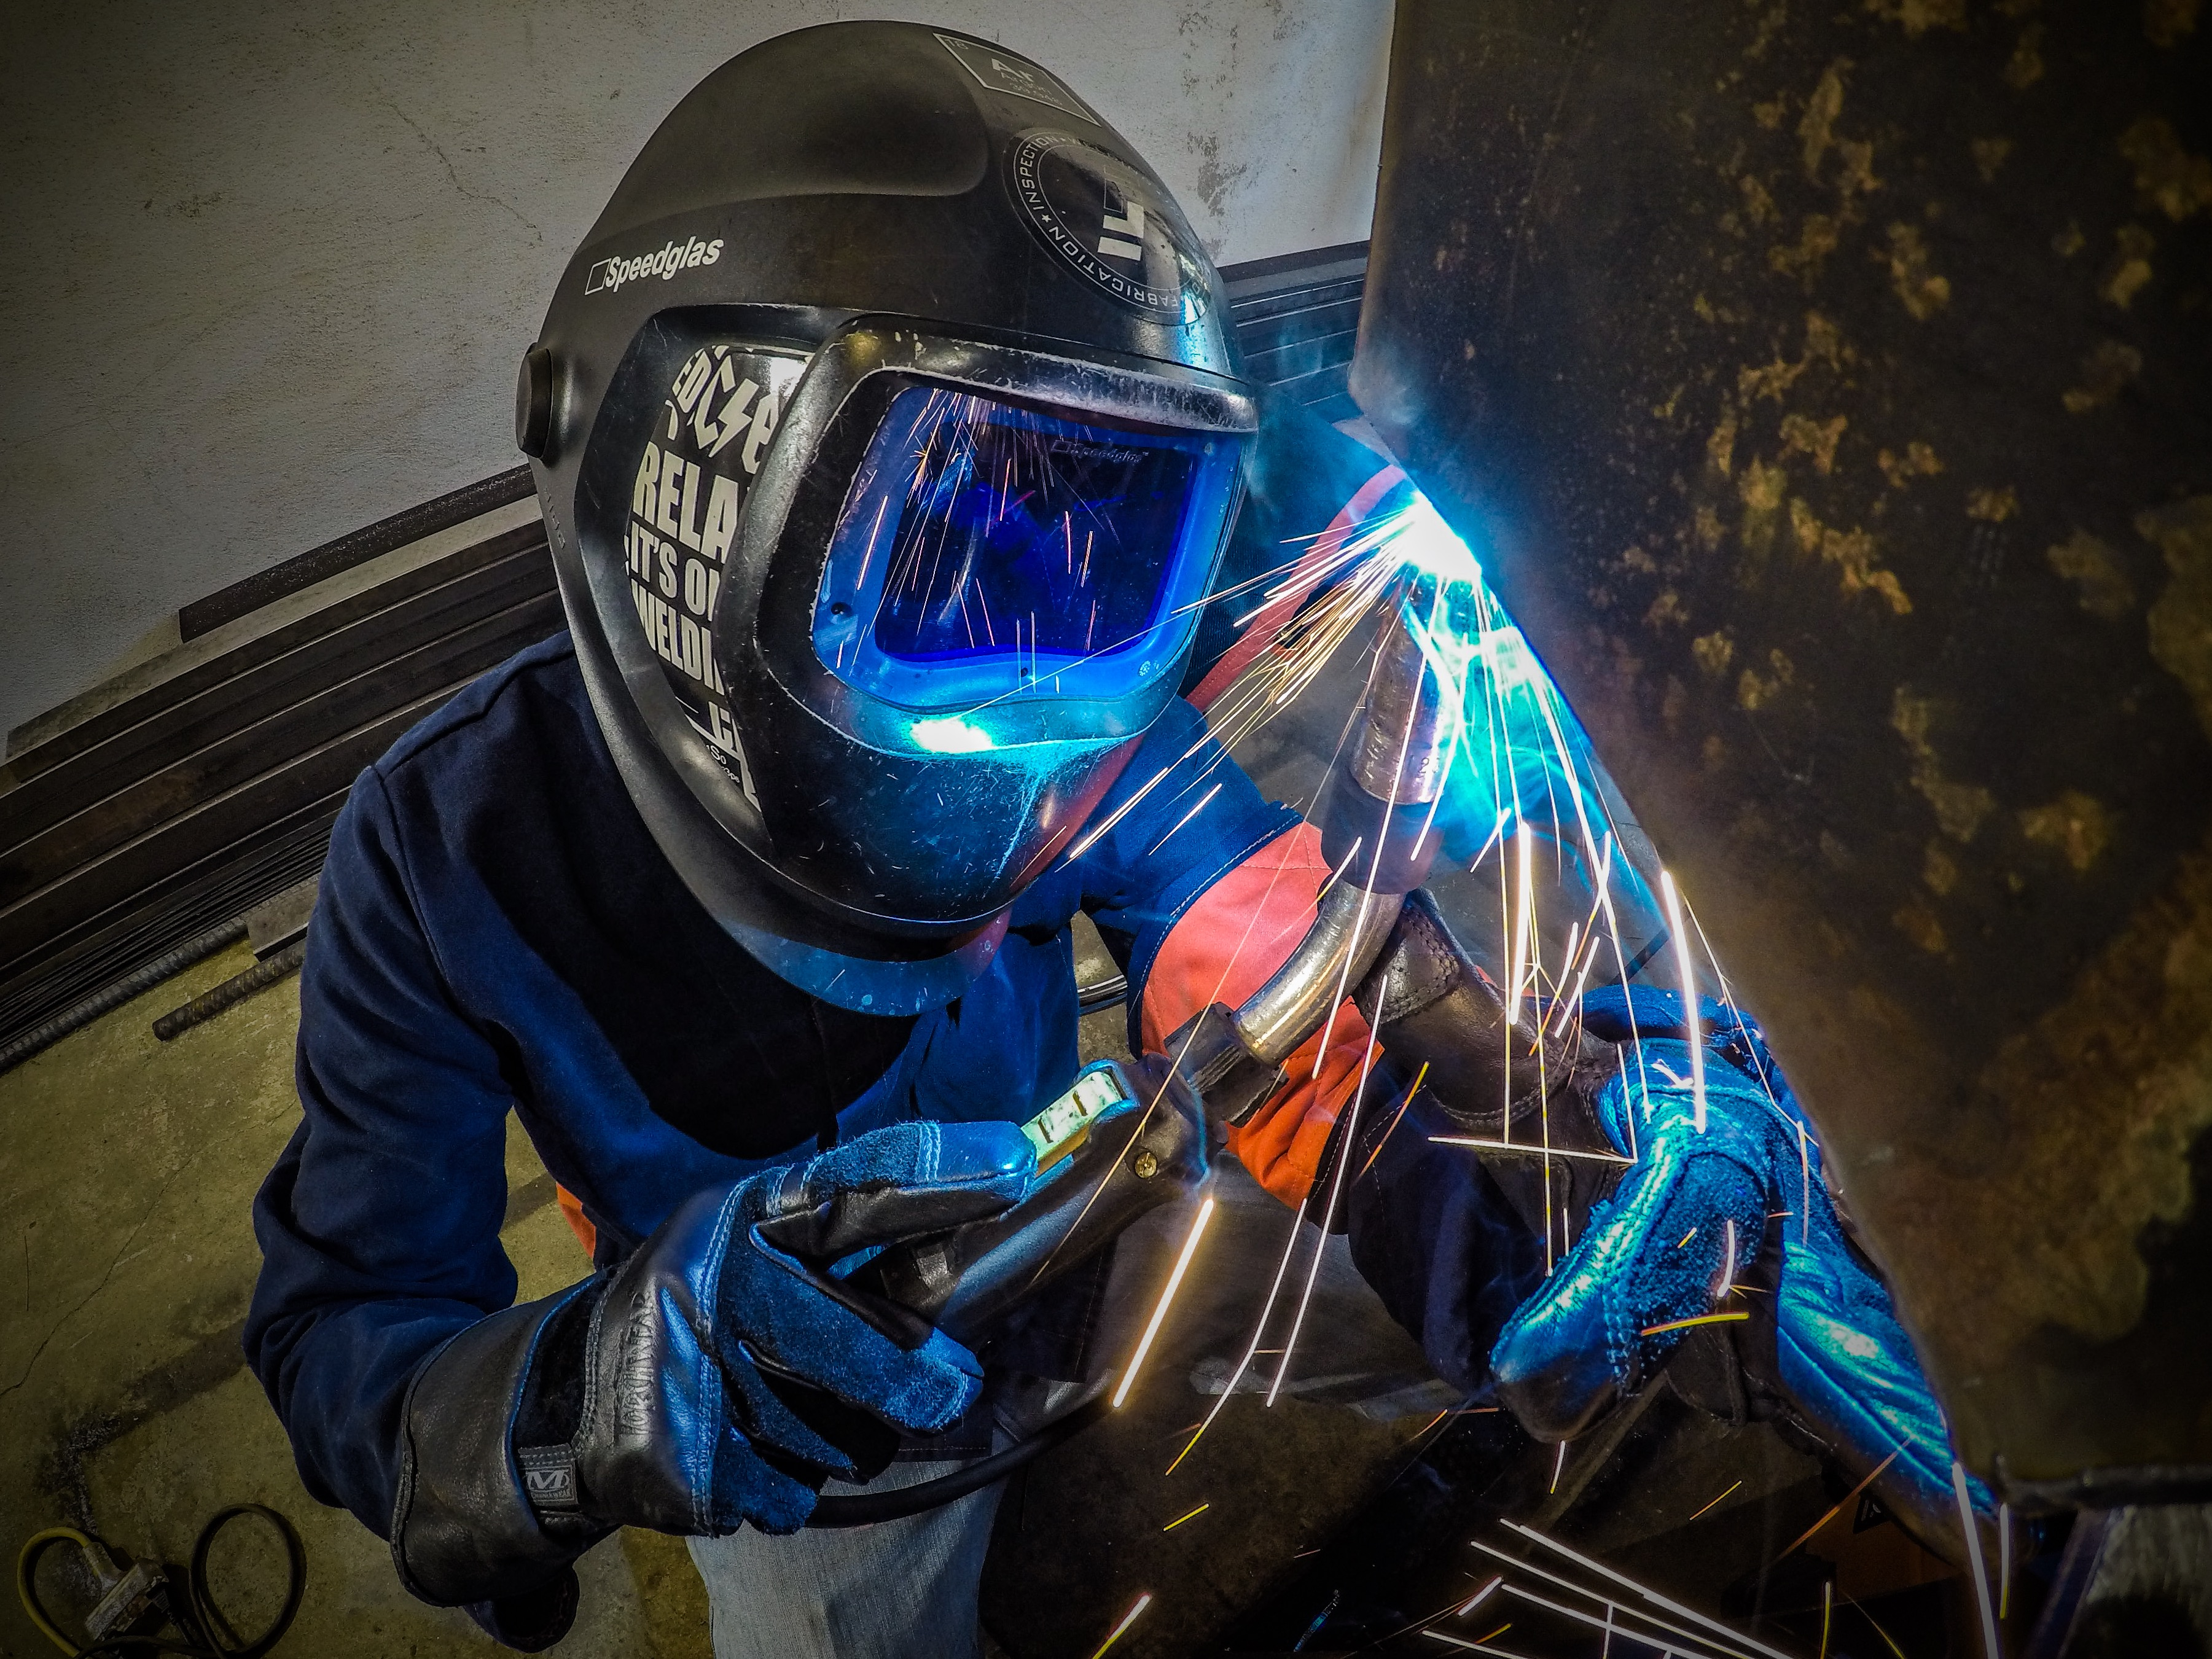 Man Doing Mig Welding Overhead on an Old Metal Above him